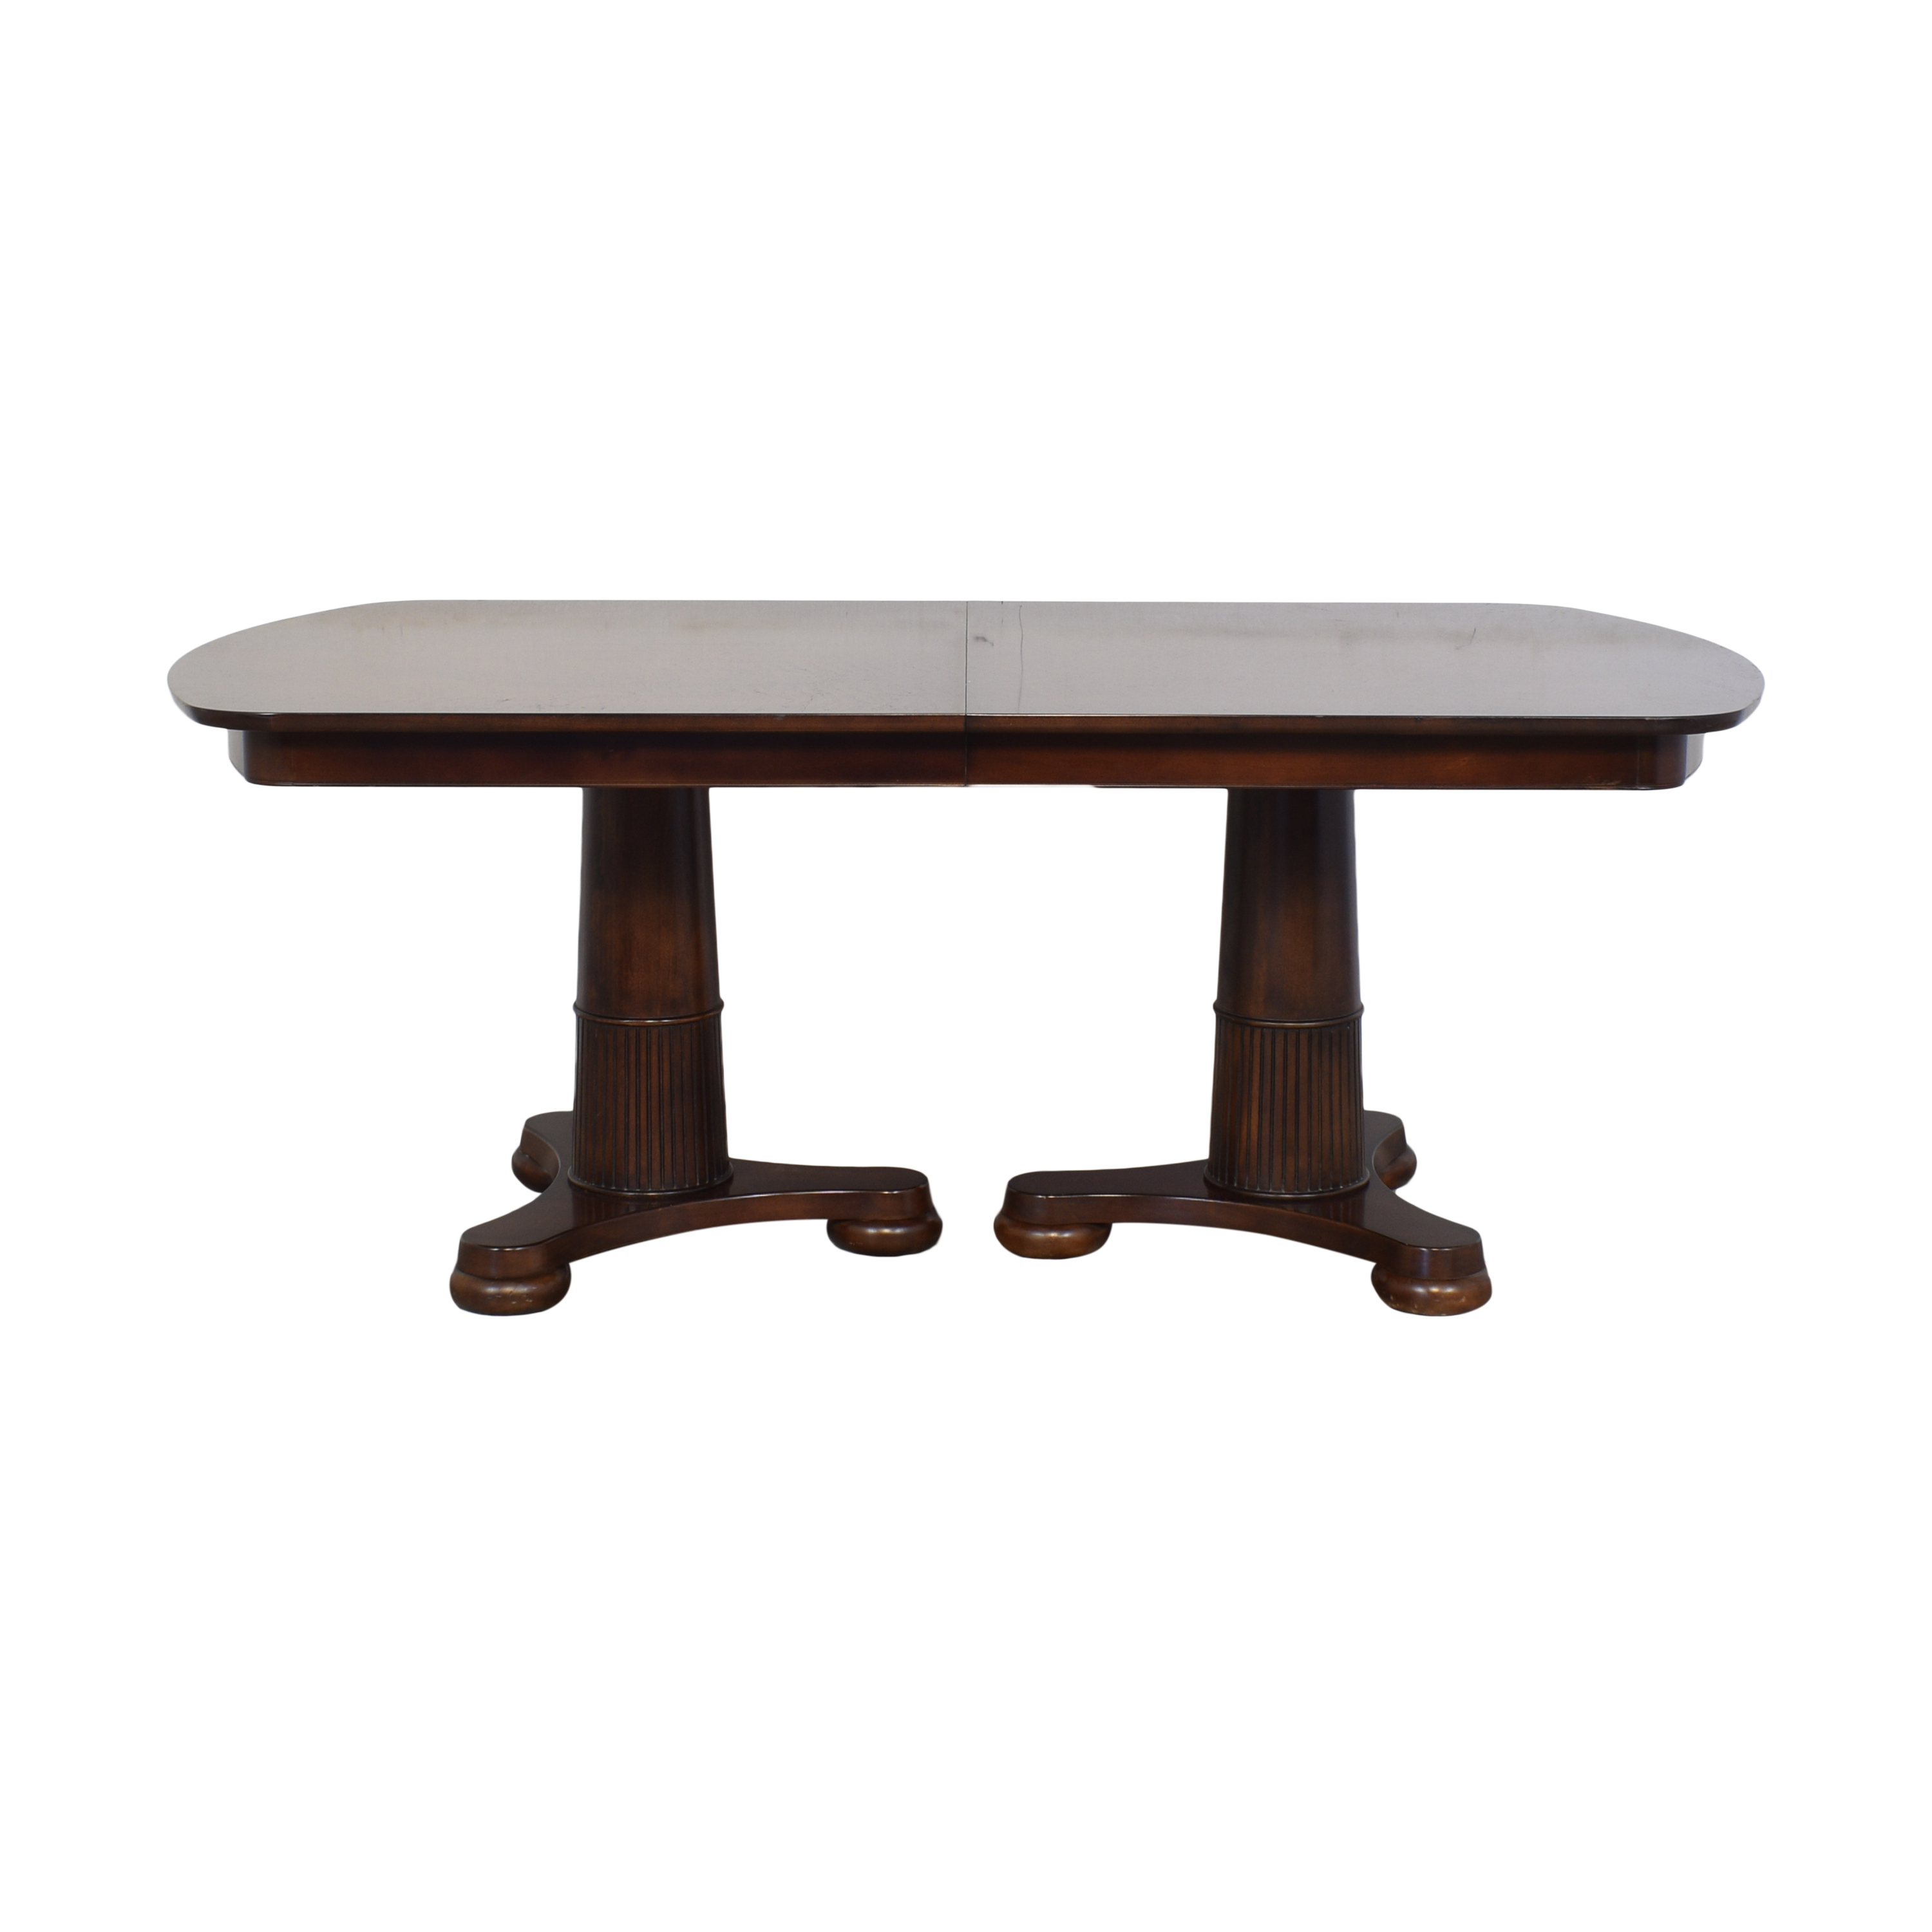 Macy's Macy's Extendable Pedestal Dining Table nj